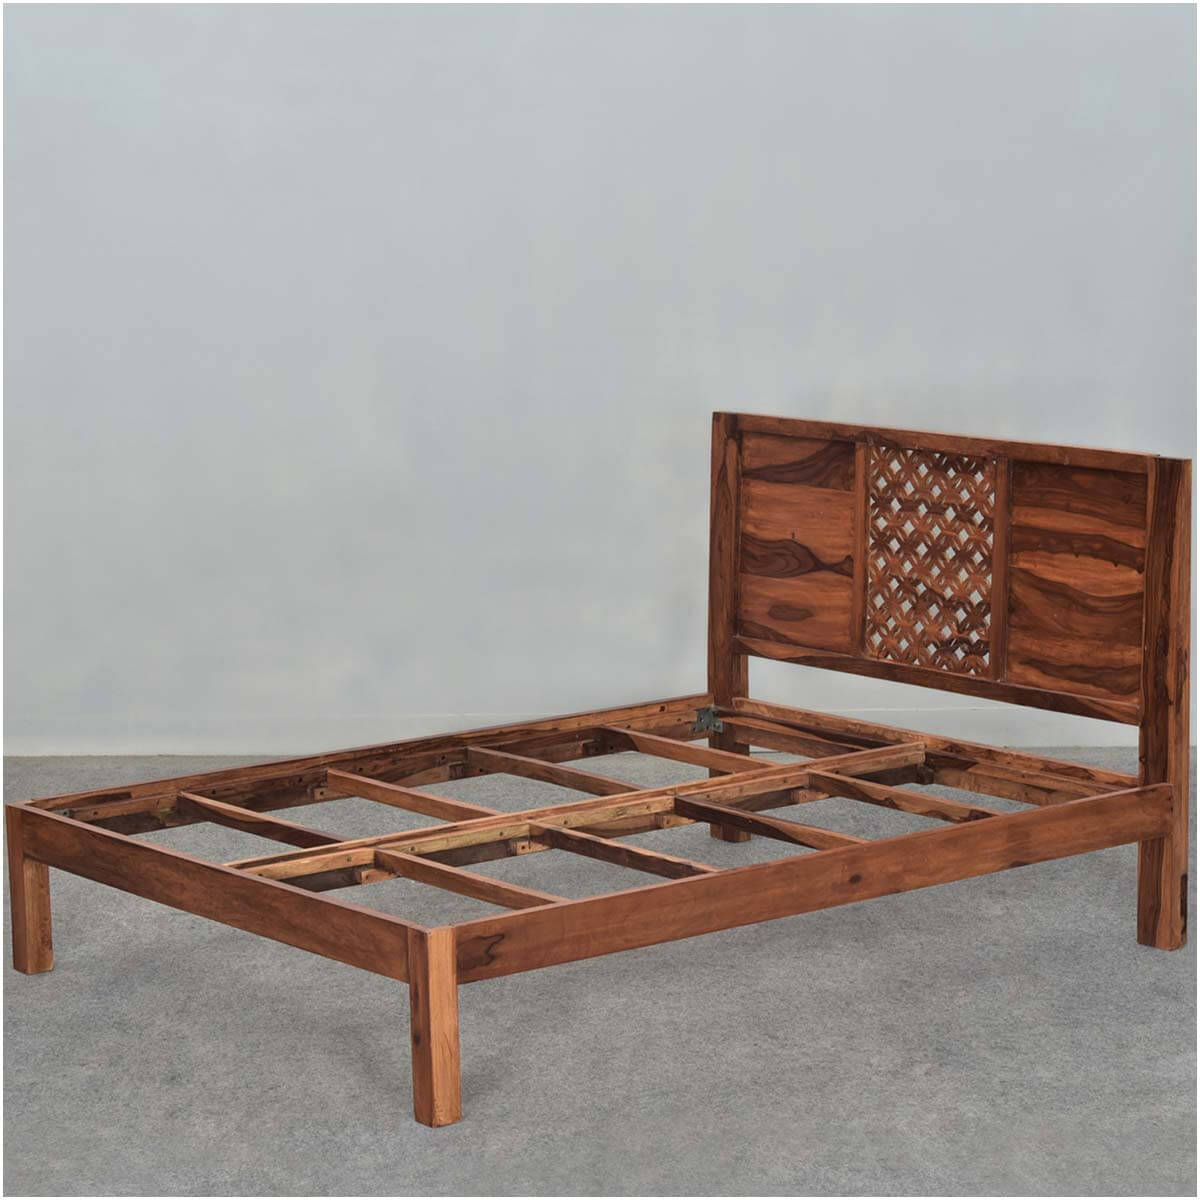 Diamond lattice solid wood rustic platform bed frame w Rustic bed frames